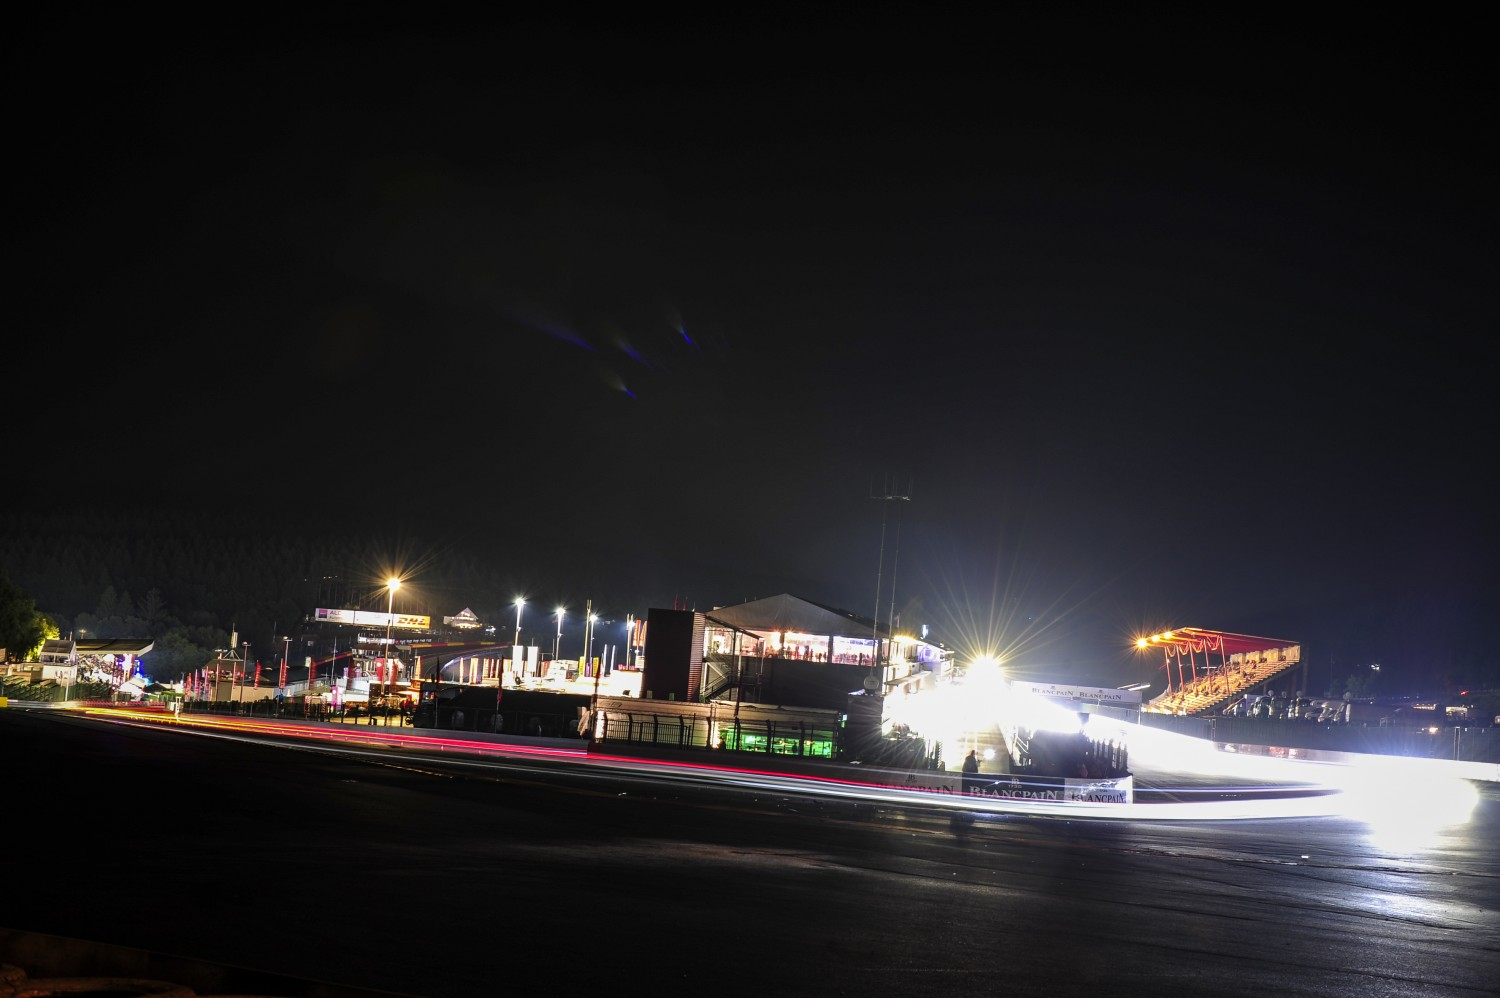 Race update after 8 hours : Six different brands in top-6 after eight hours of racing